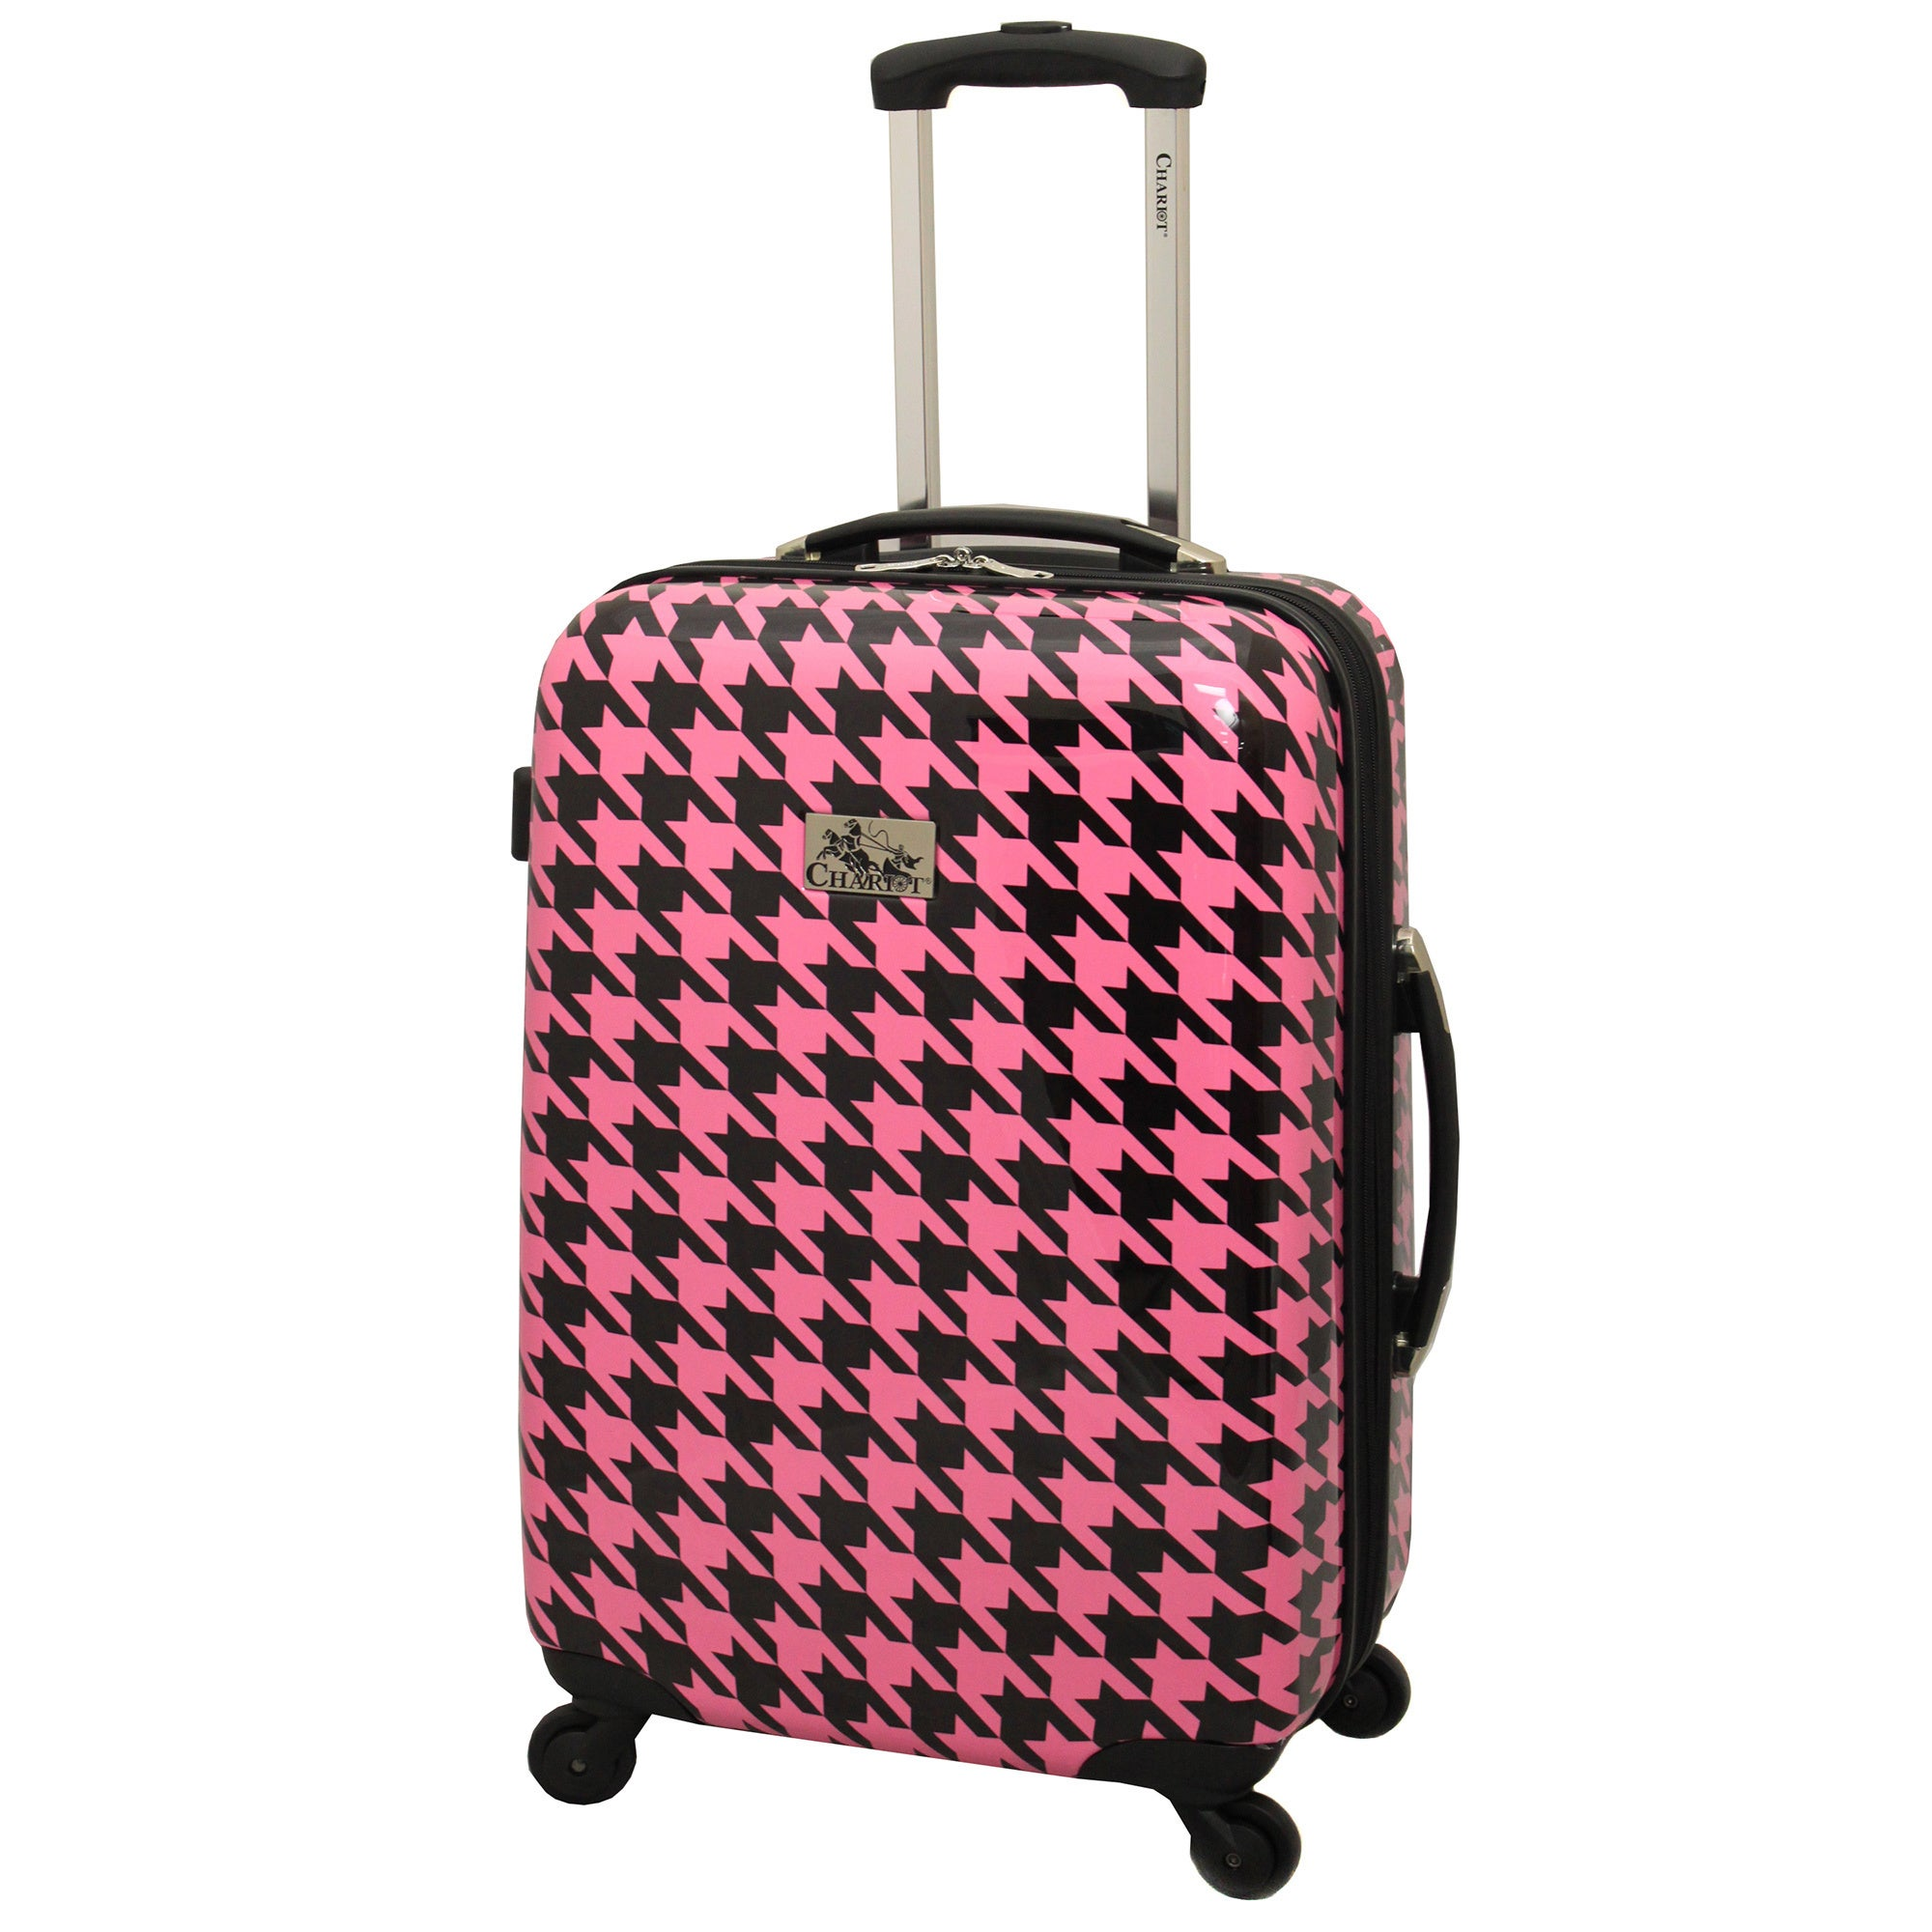 d6ff0f1ba Shop Chariot Houndstooth 3-Piece Hardside Lightweight Expandable Upright  Spinner Luggage Set - On Sale - Free Shipping Today - Overstock - 9721094